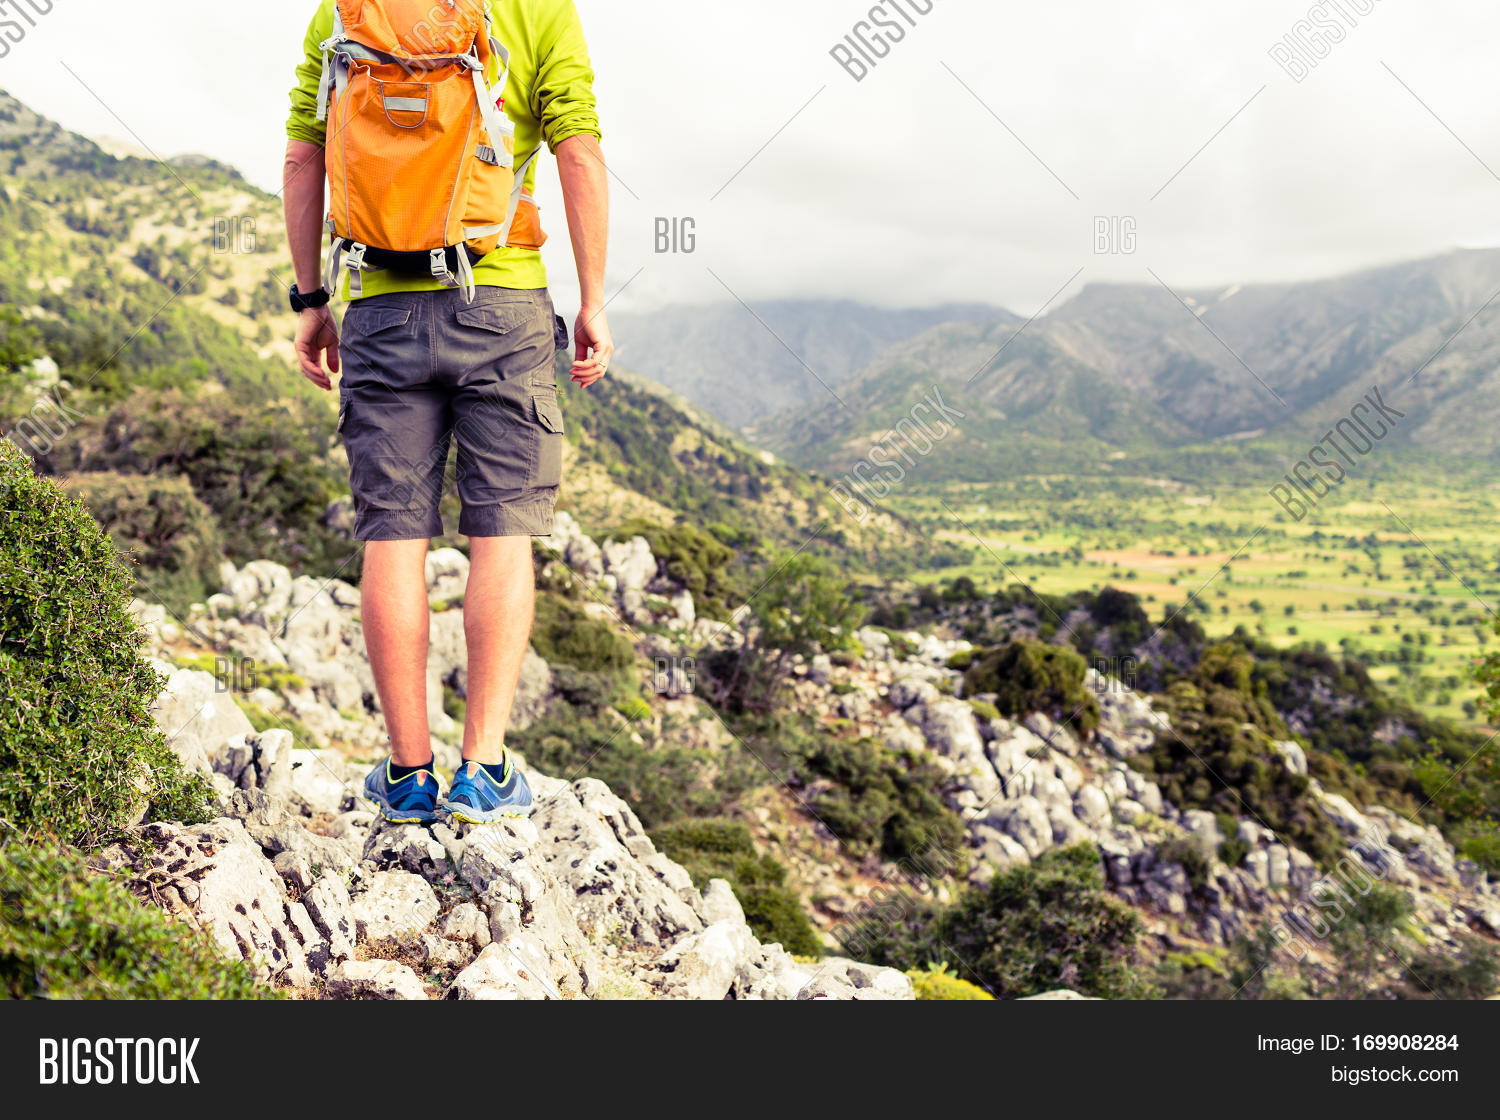 860924da96ac6b Hiking man looking at beautiful mountains inspirational landscape. Hiker  trekking with backpack on rocky trail